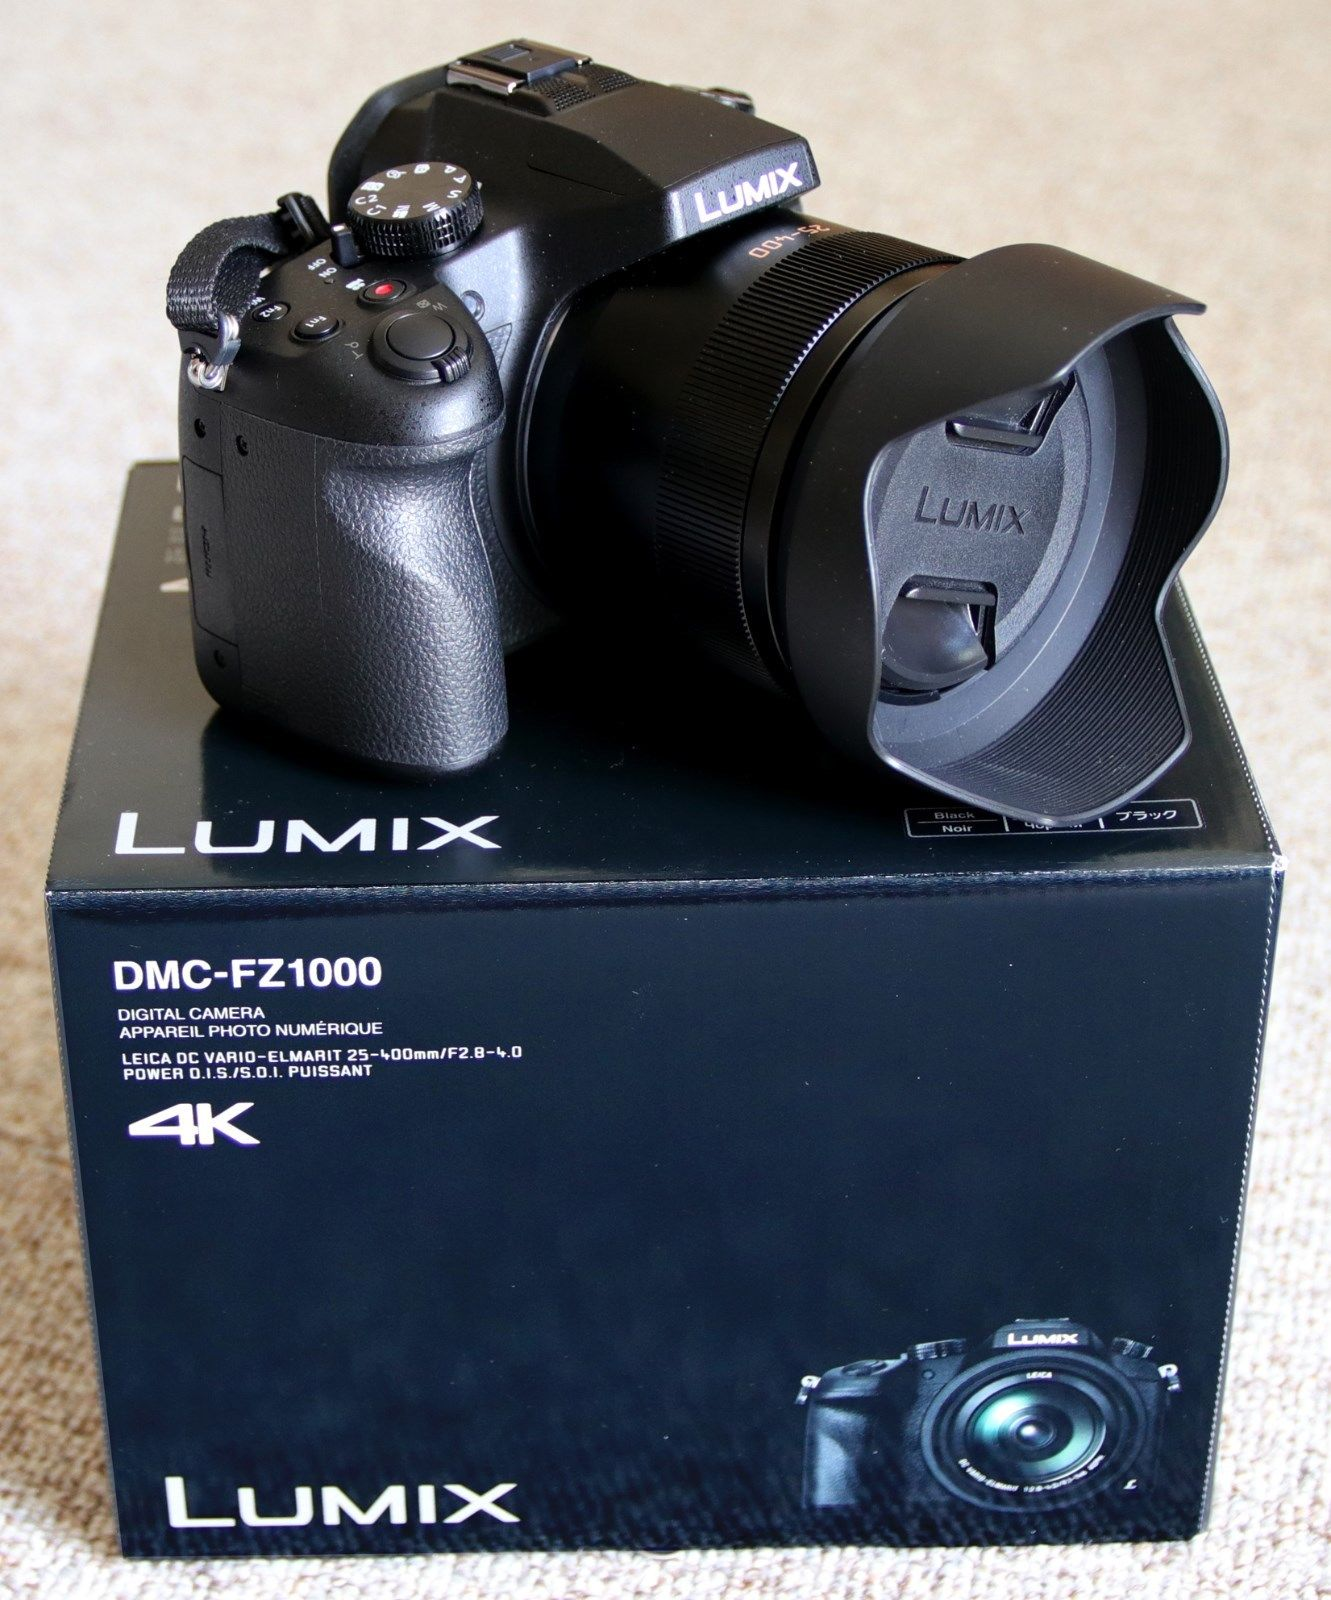 Panasonic LUMIX DMC-FZ1000 20.1 MP Digitalkamera OVP, plus Zubehörpaket